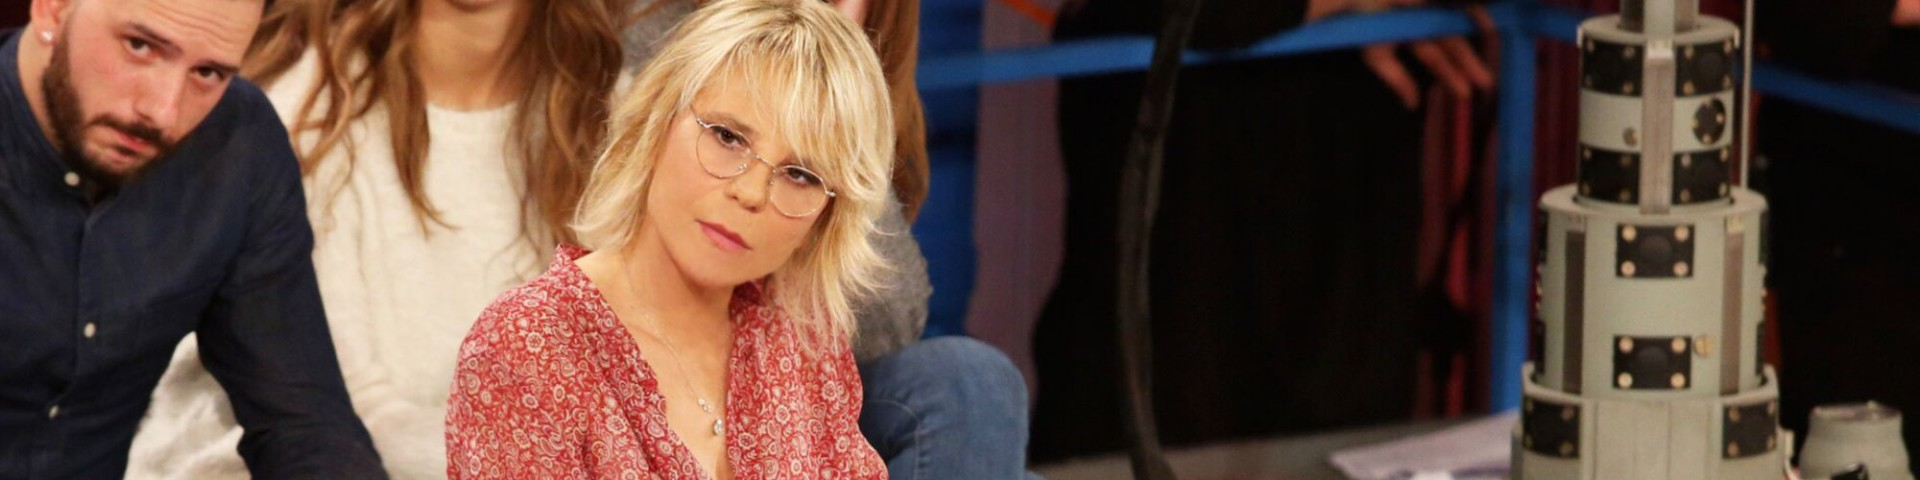 Amici di Maria De Filippi: stop alla messa in onda su Real Time